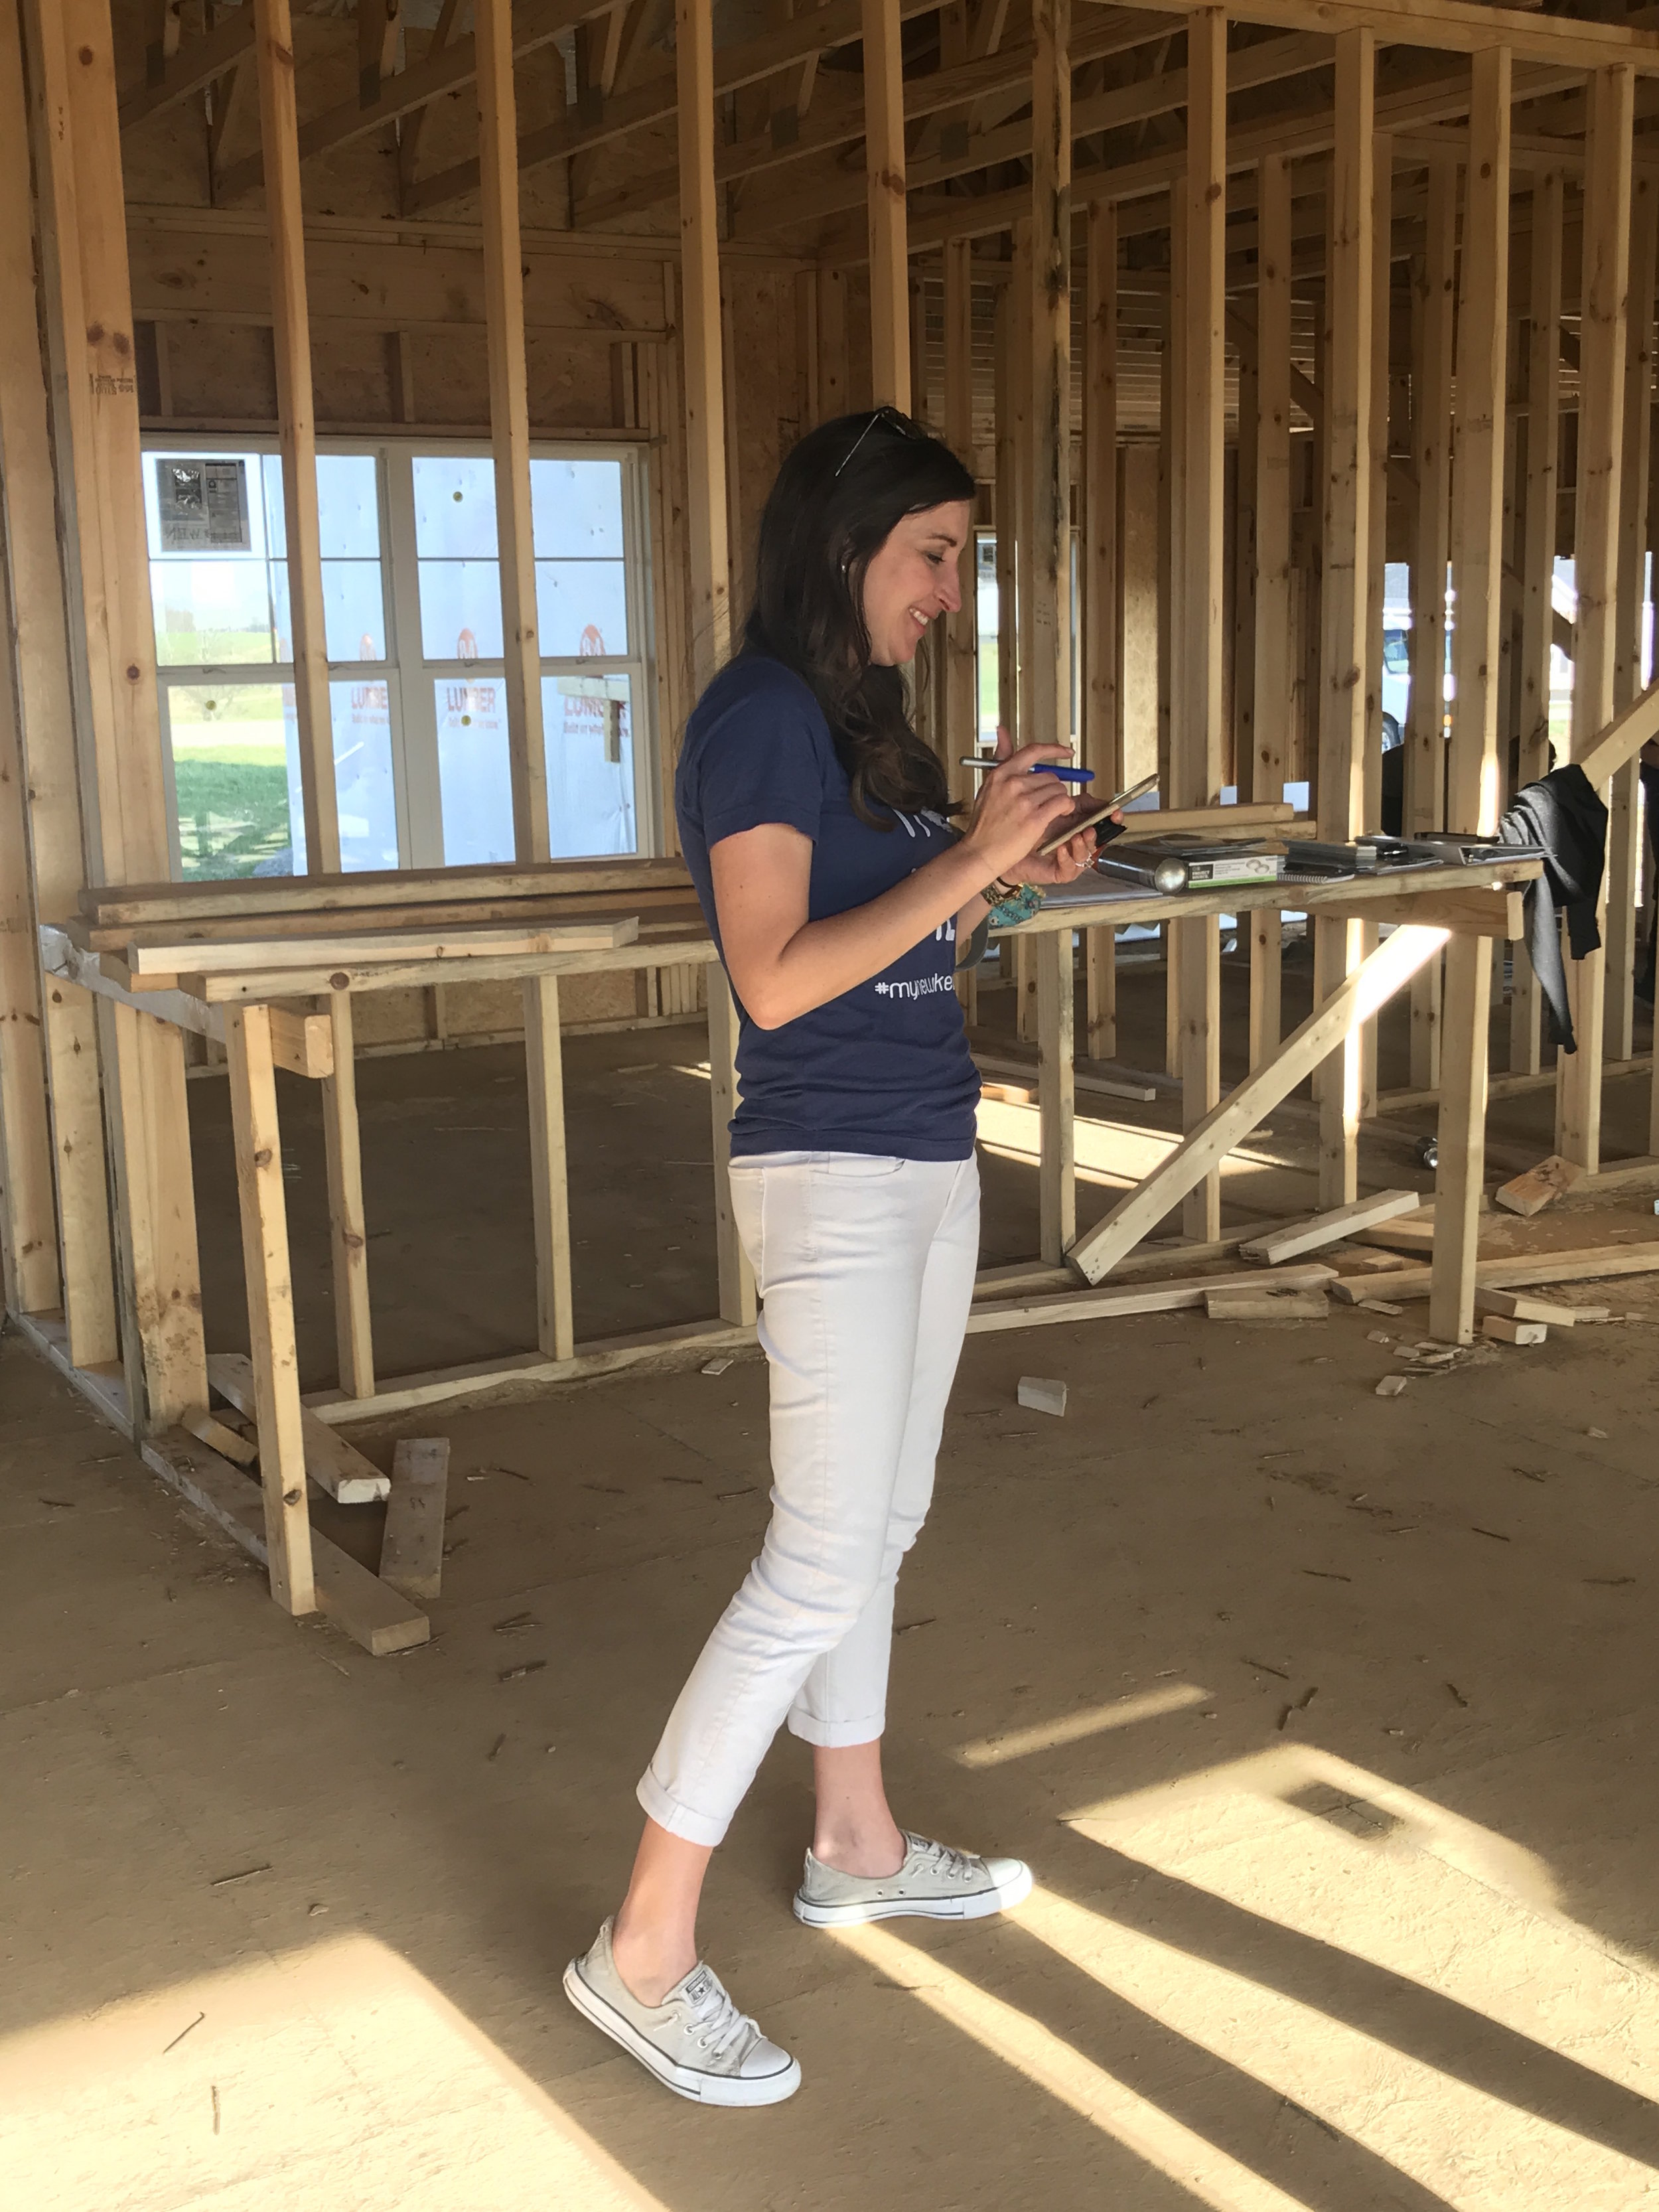 - Kristy was busy calculating kitchen measurements making sure it all fits!